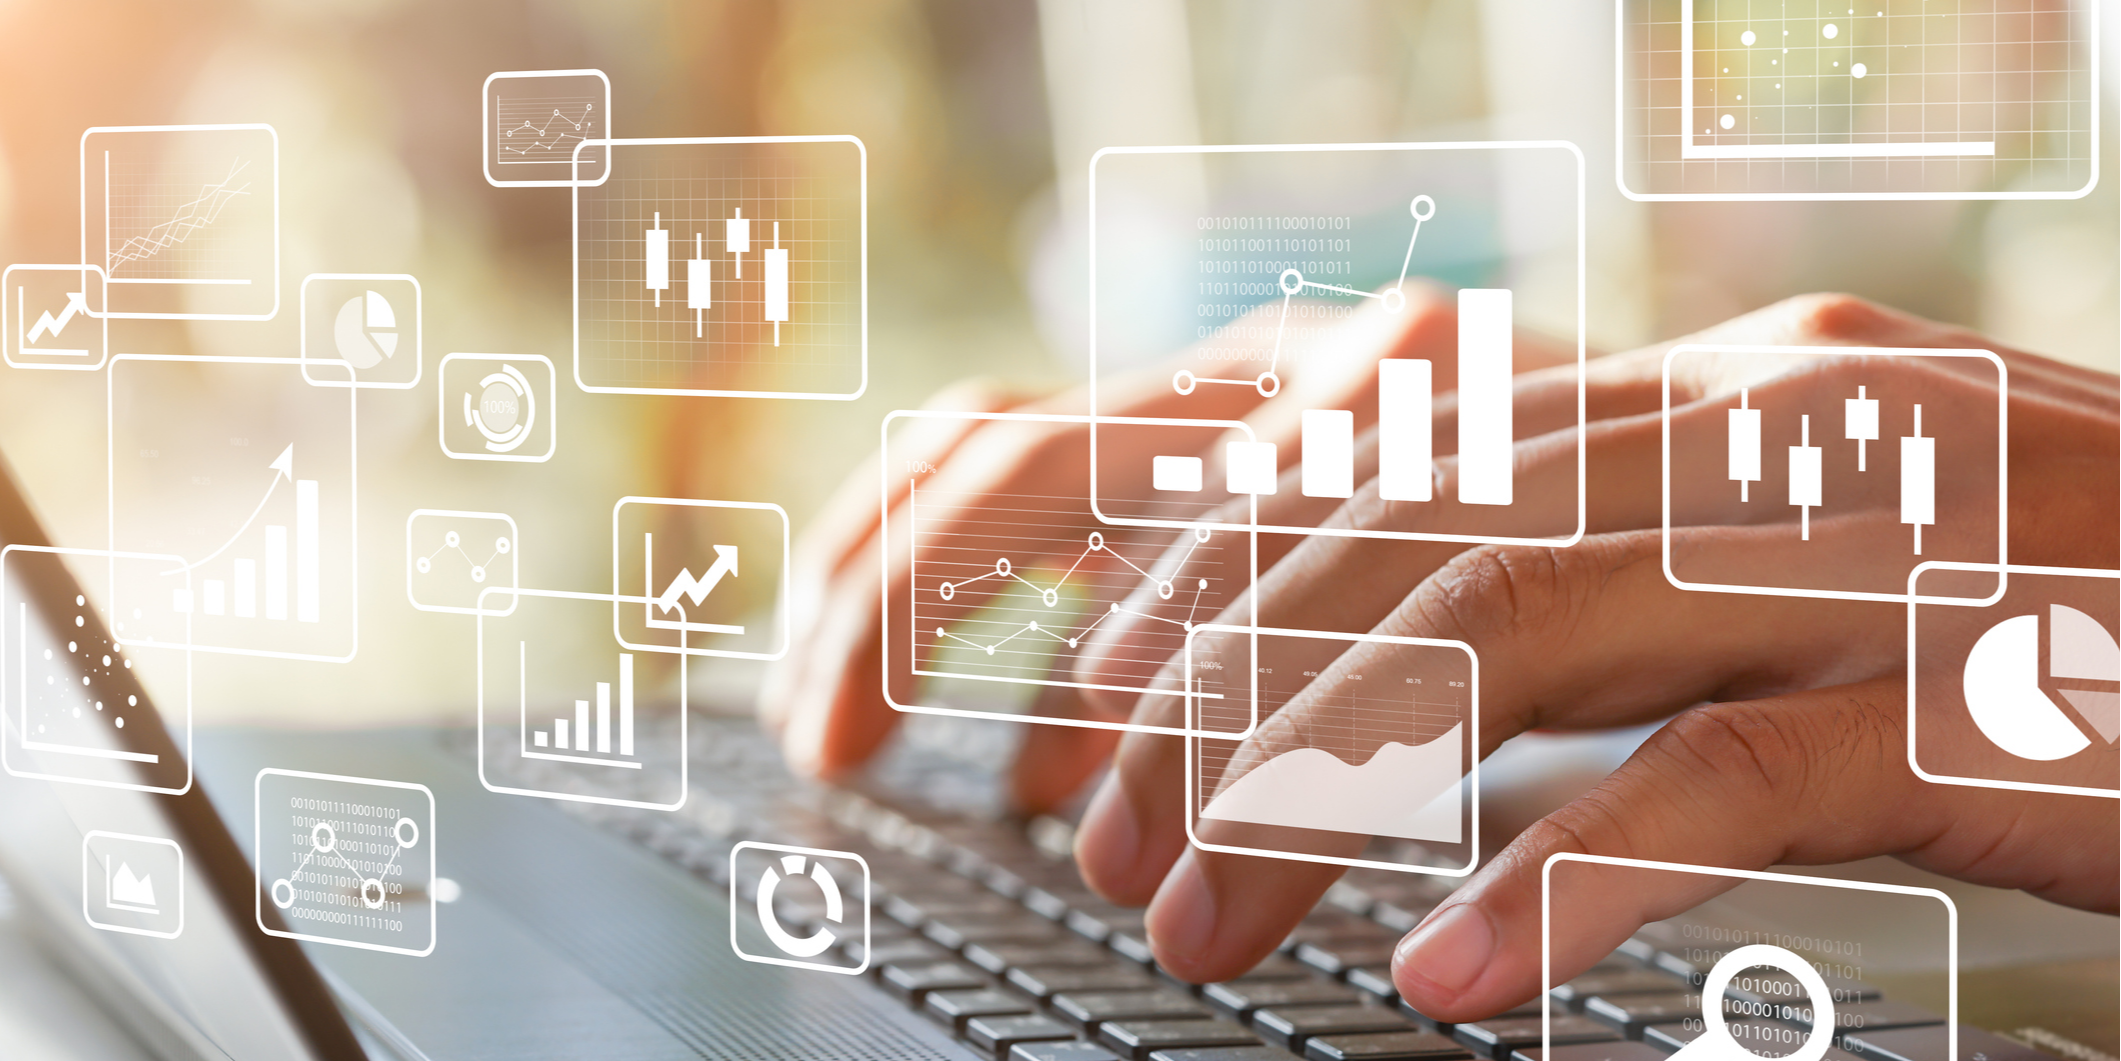 transparency reporting and law firm success metrics